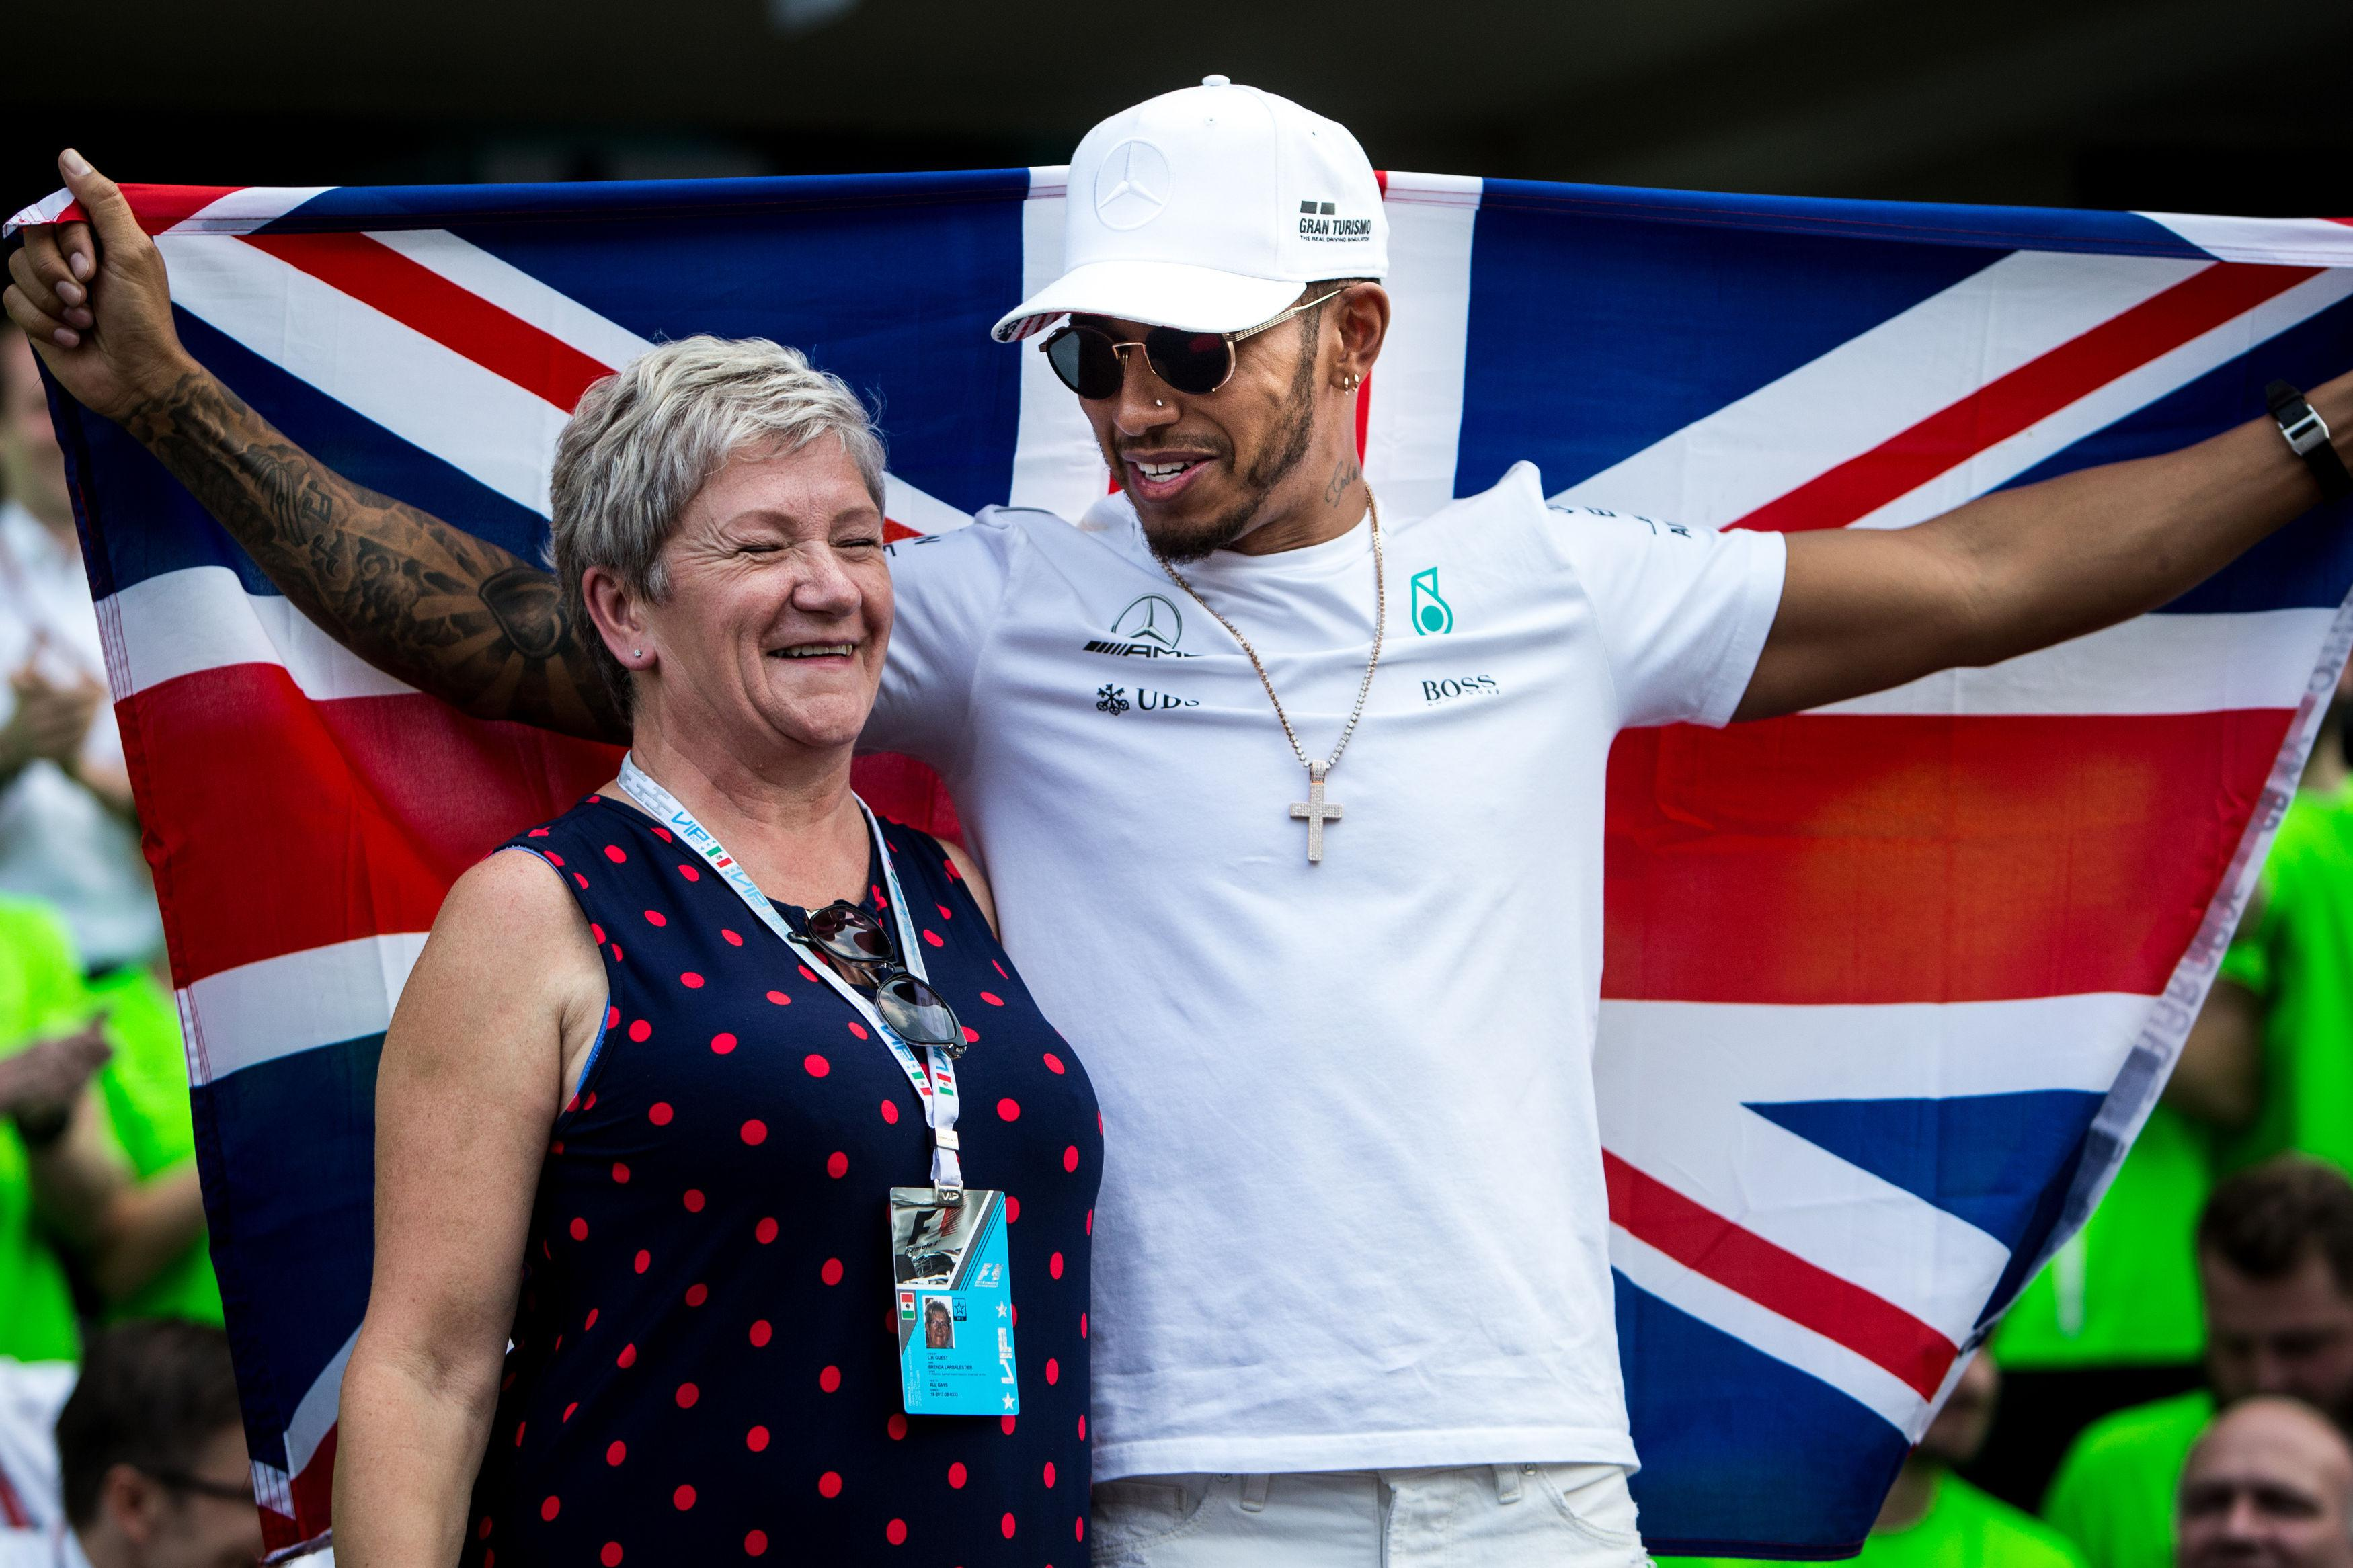 Lewis Hamilton celebrated his world title with his mum in Mexico